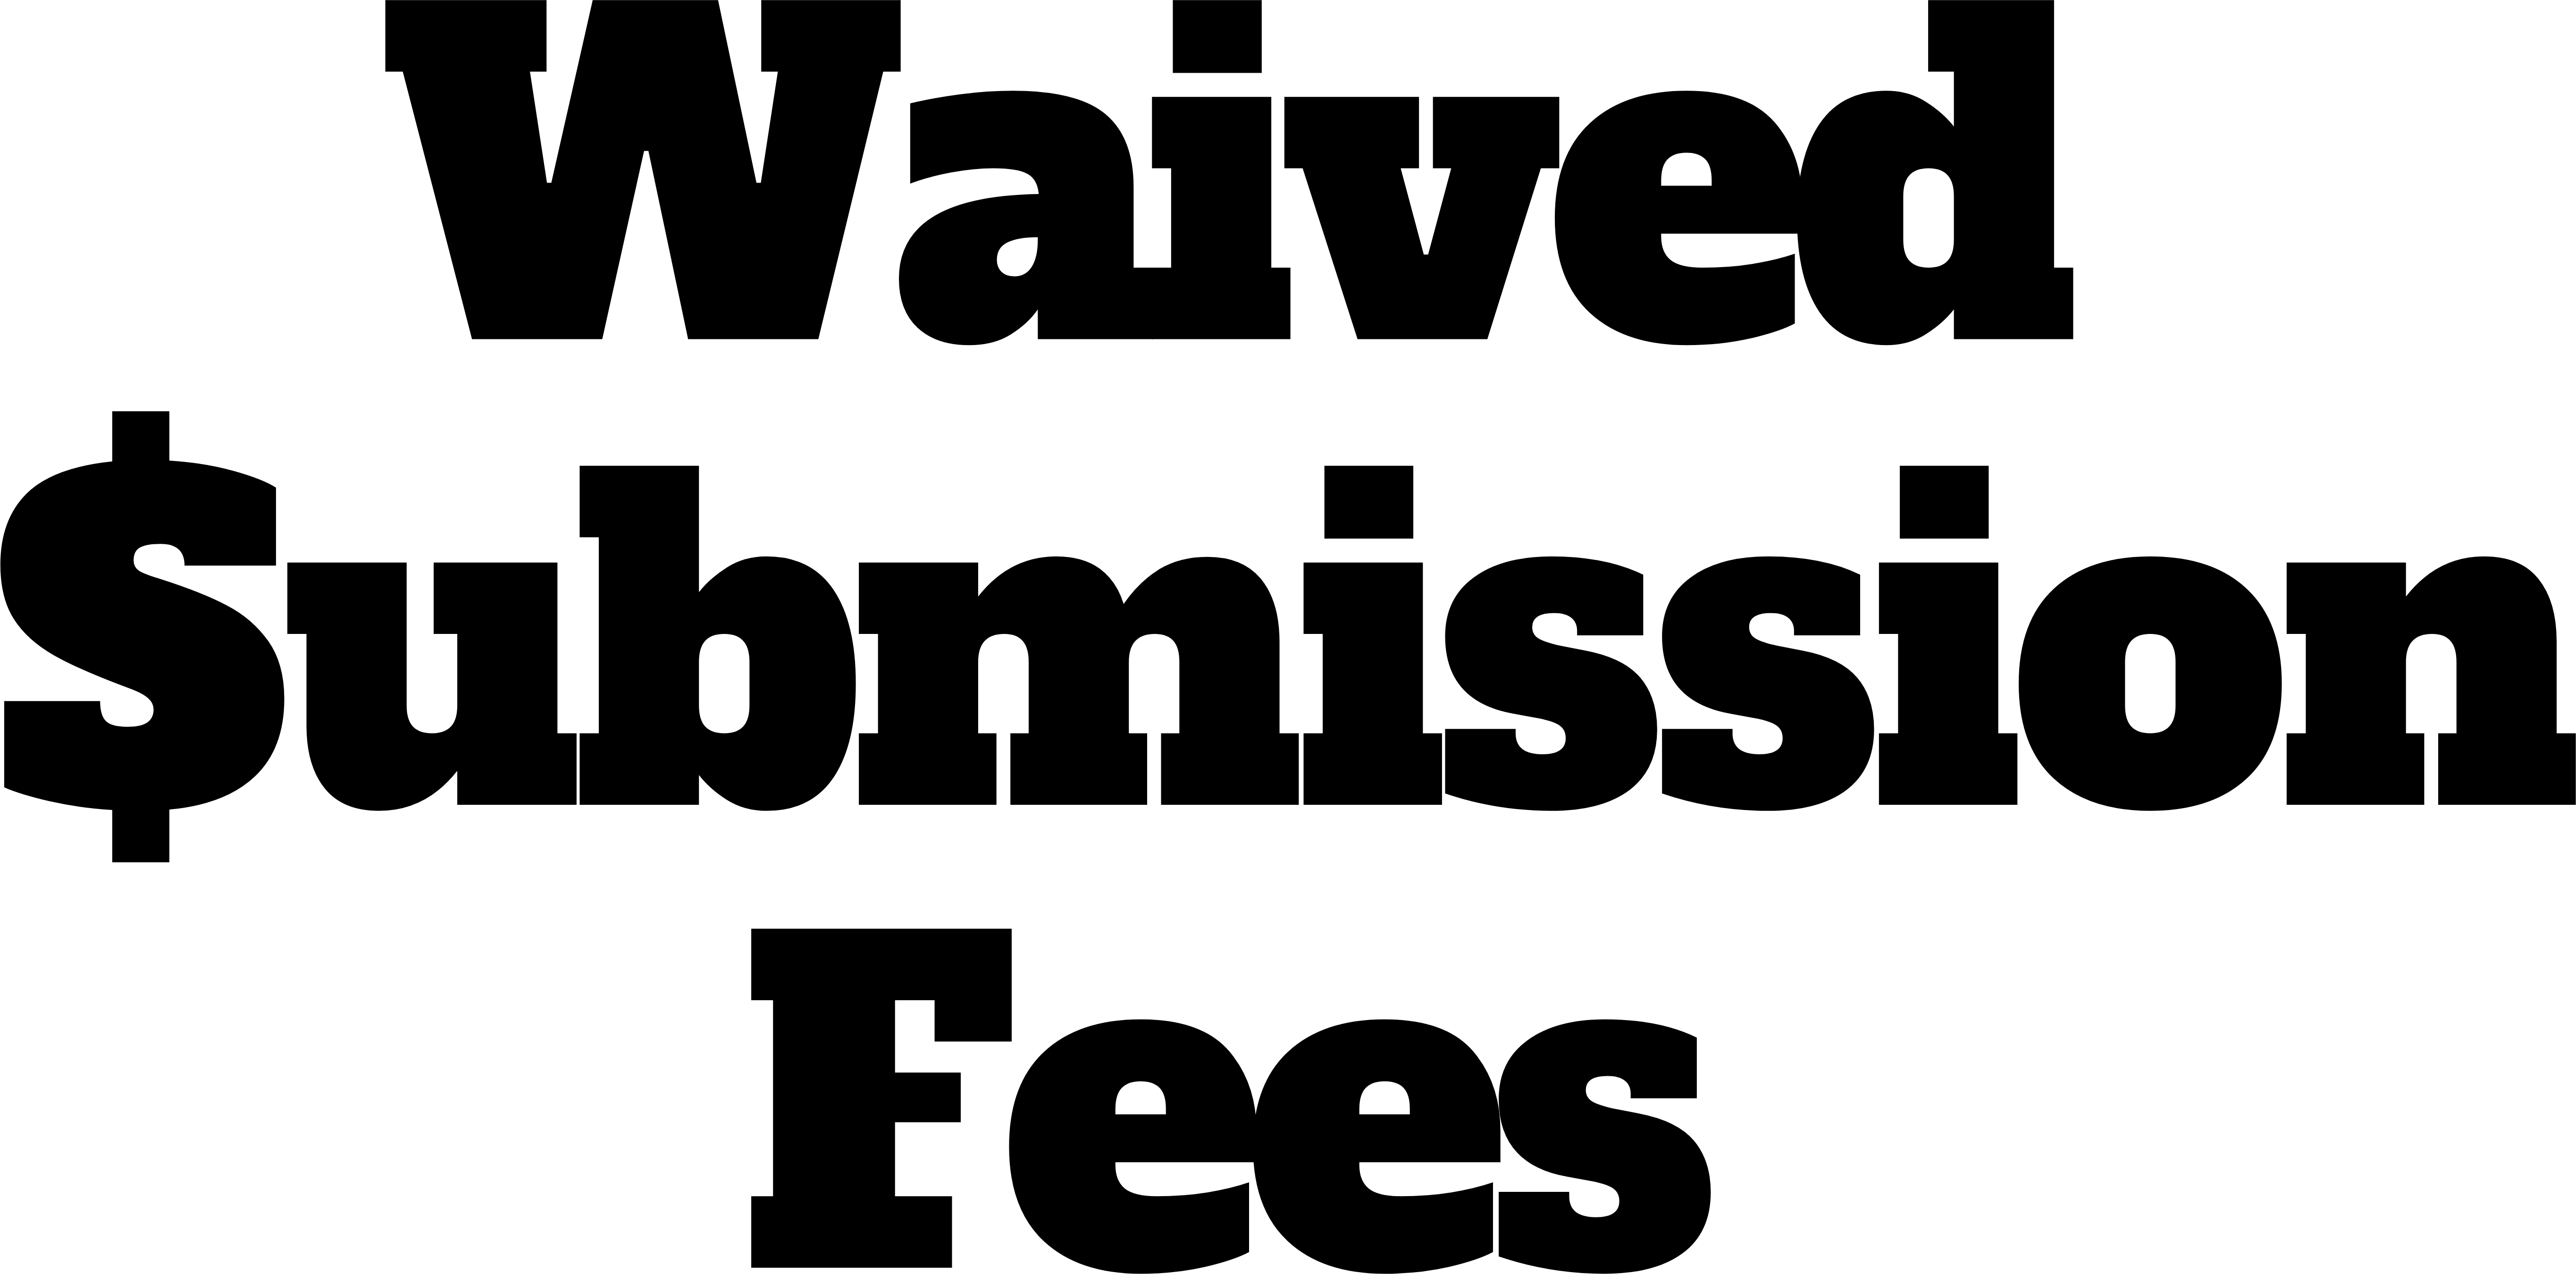 Waived Fees